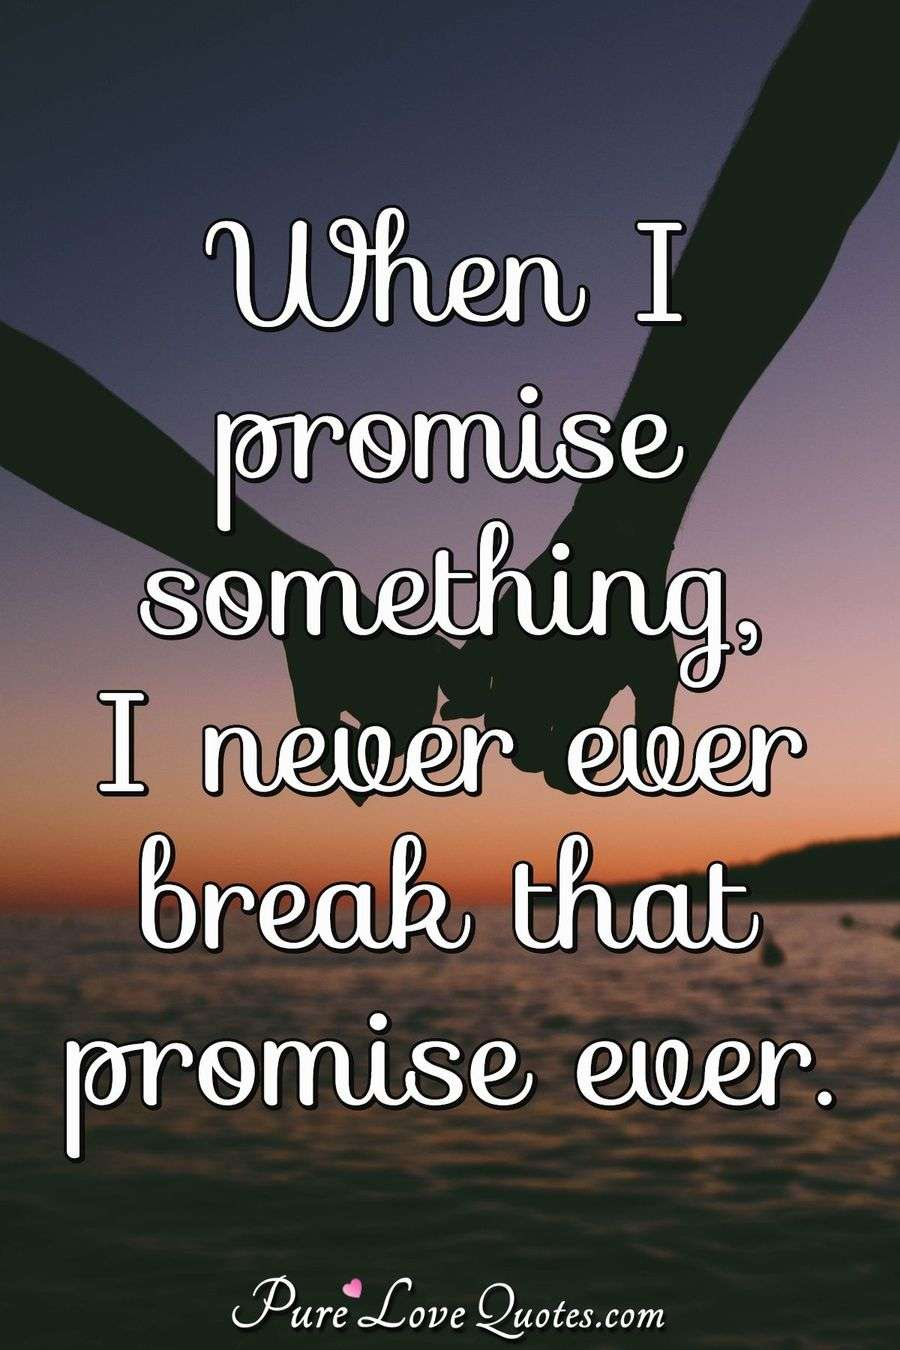 When I promise something, I never ever break that promise ever. - Anonymous